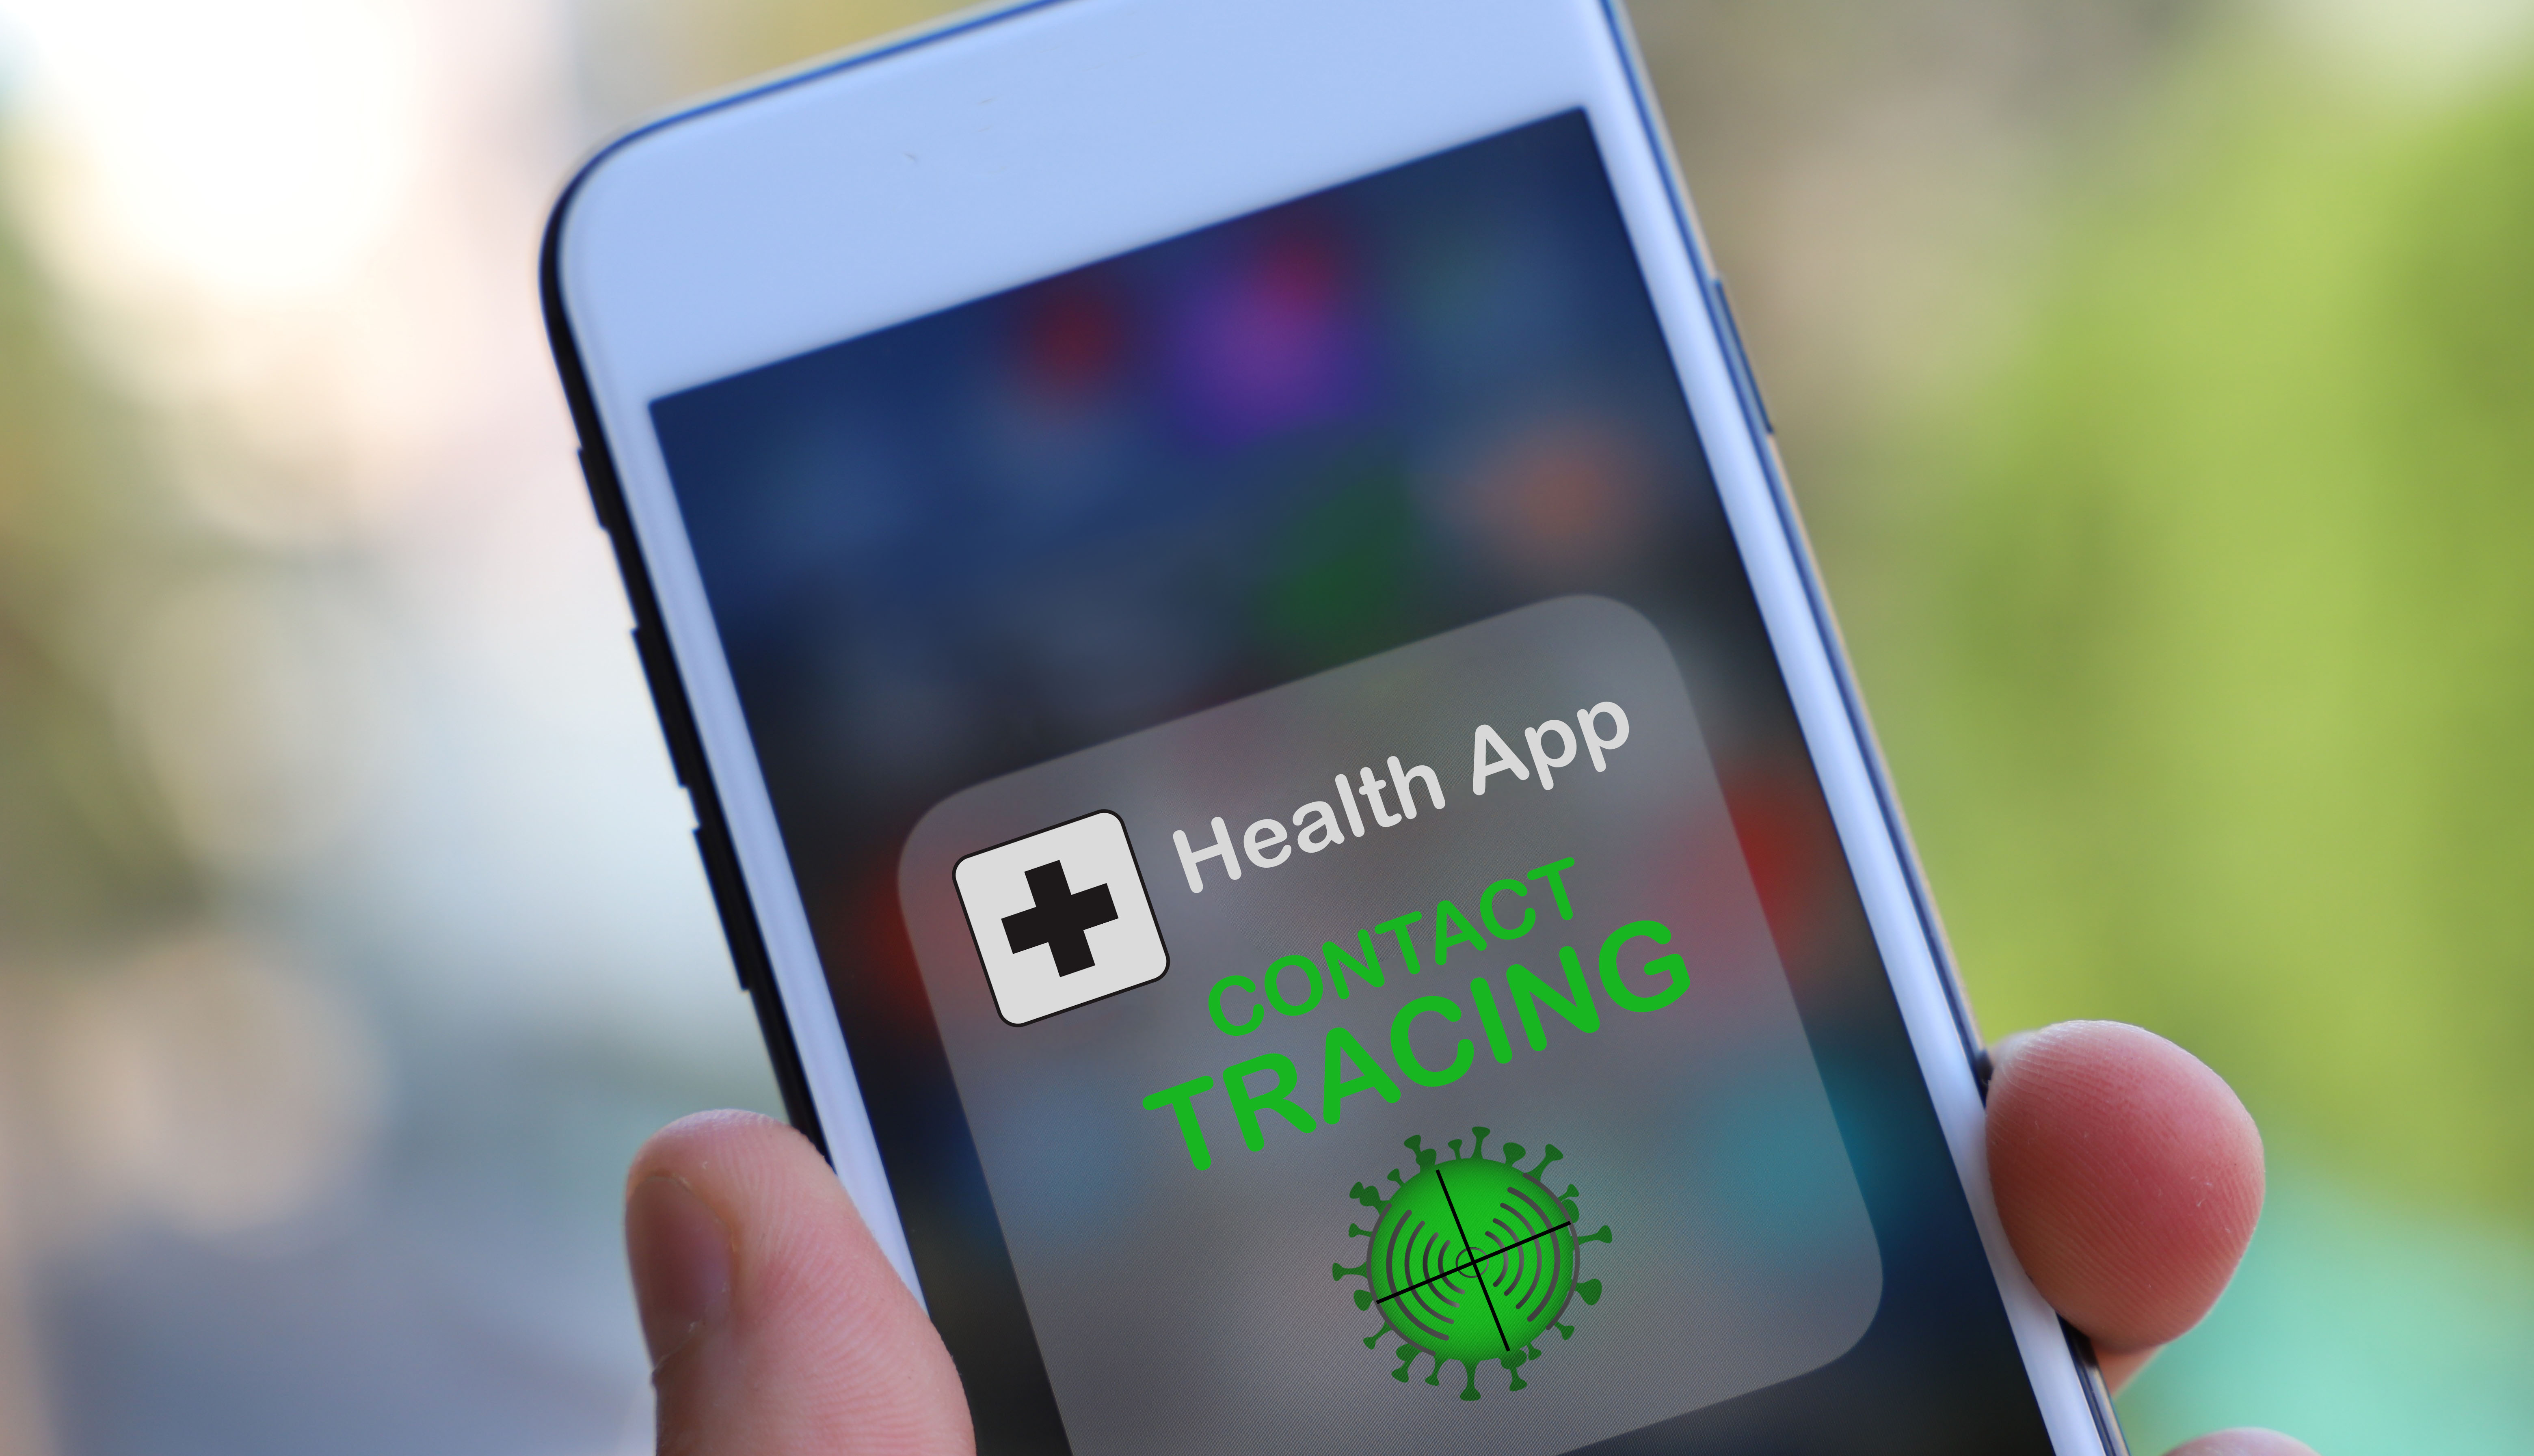 hand holding smartphone with a health app for contact tracing displayed on the phone screen